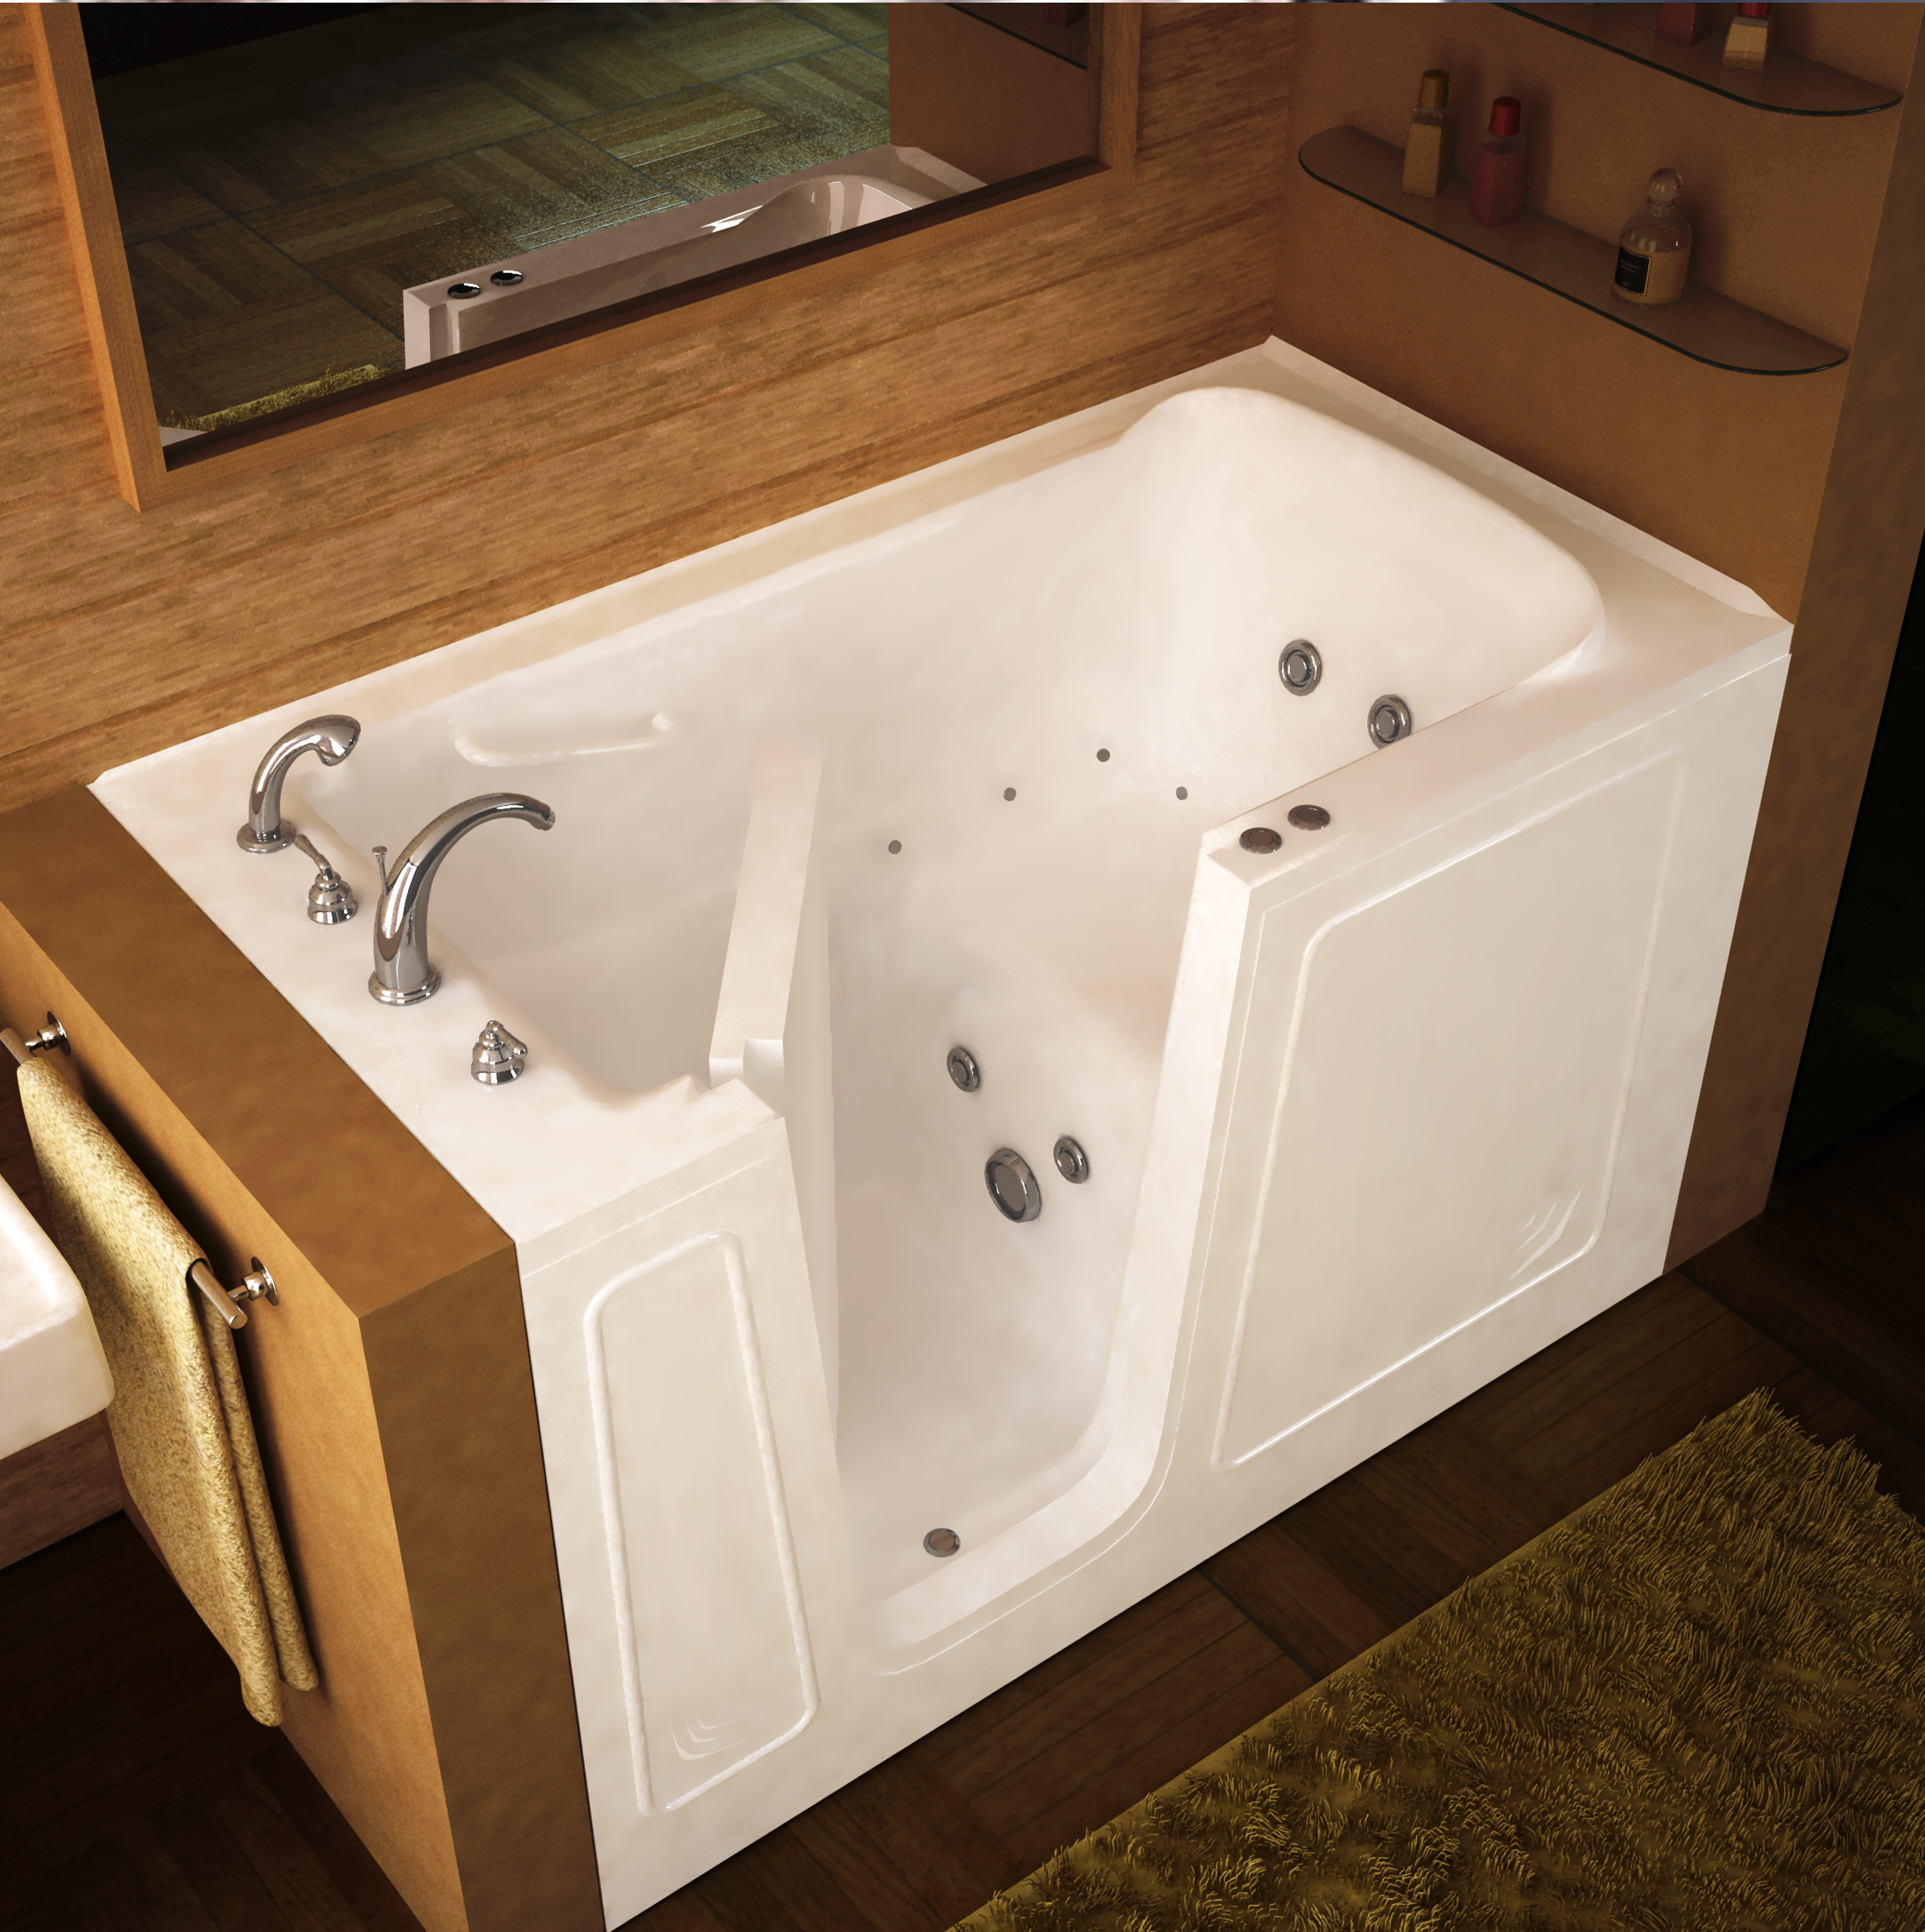 walk-in bathtub Archives - Medford Remodeling